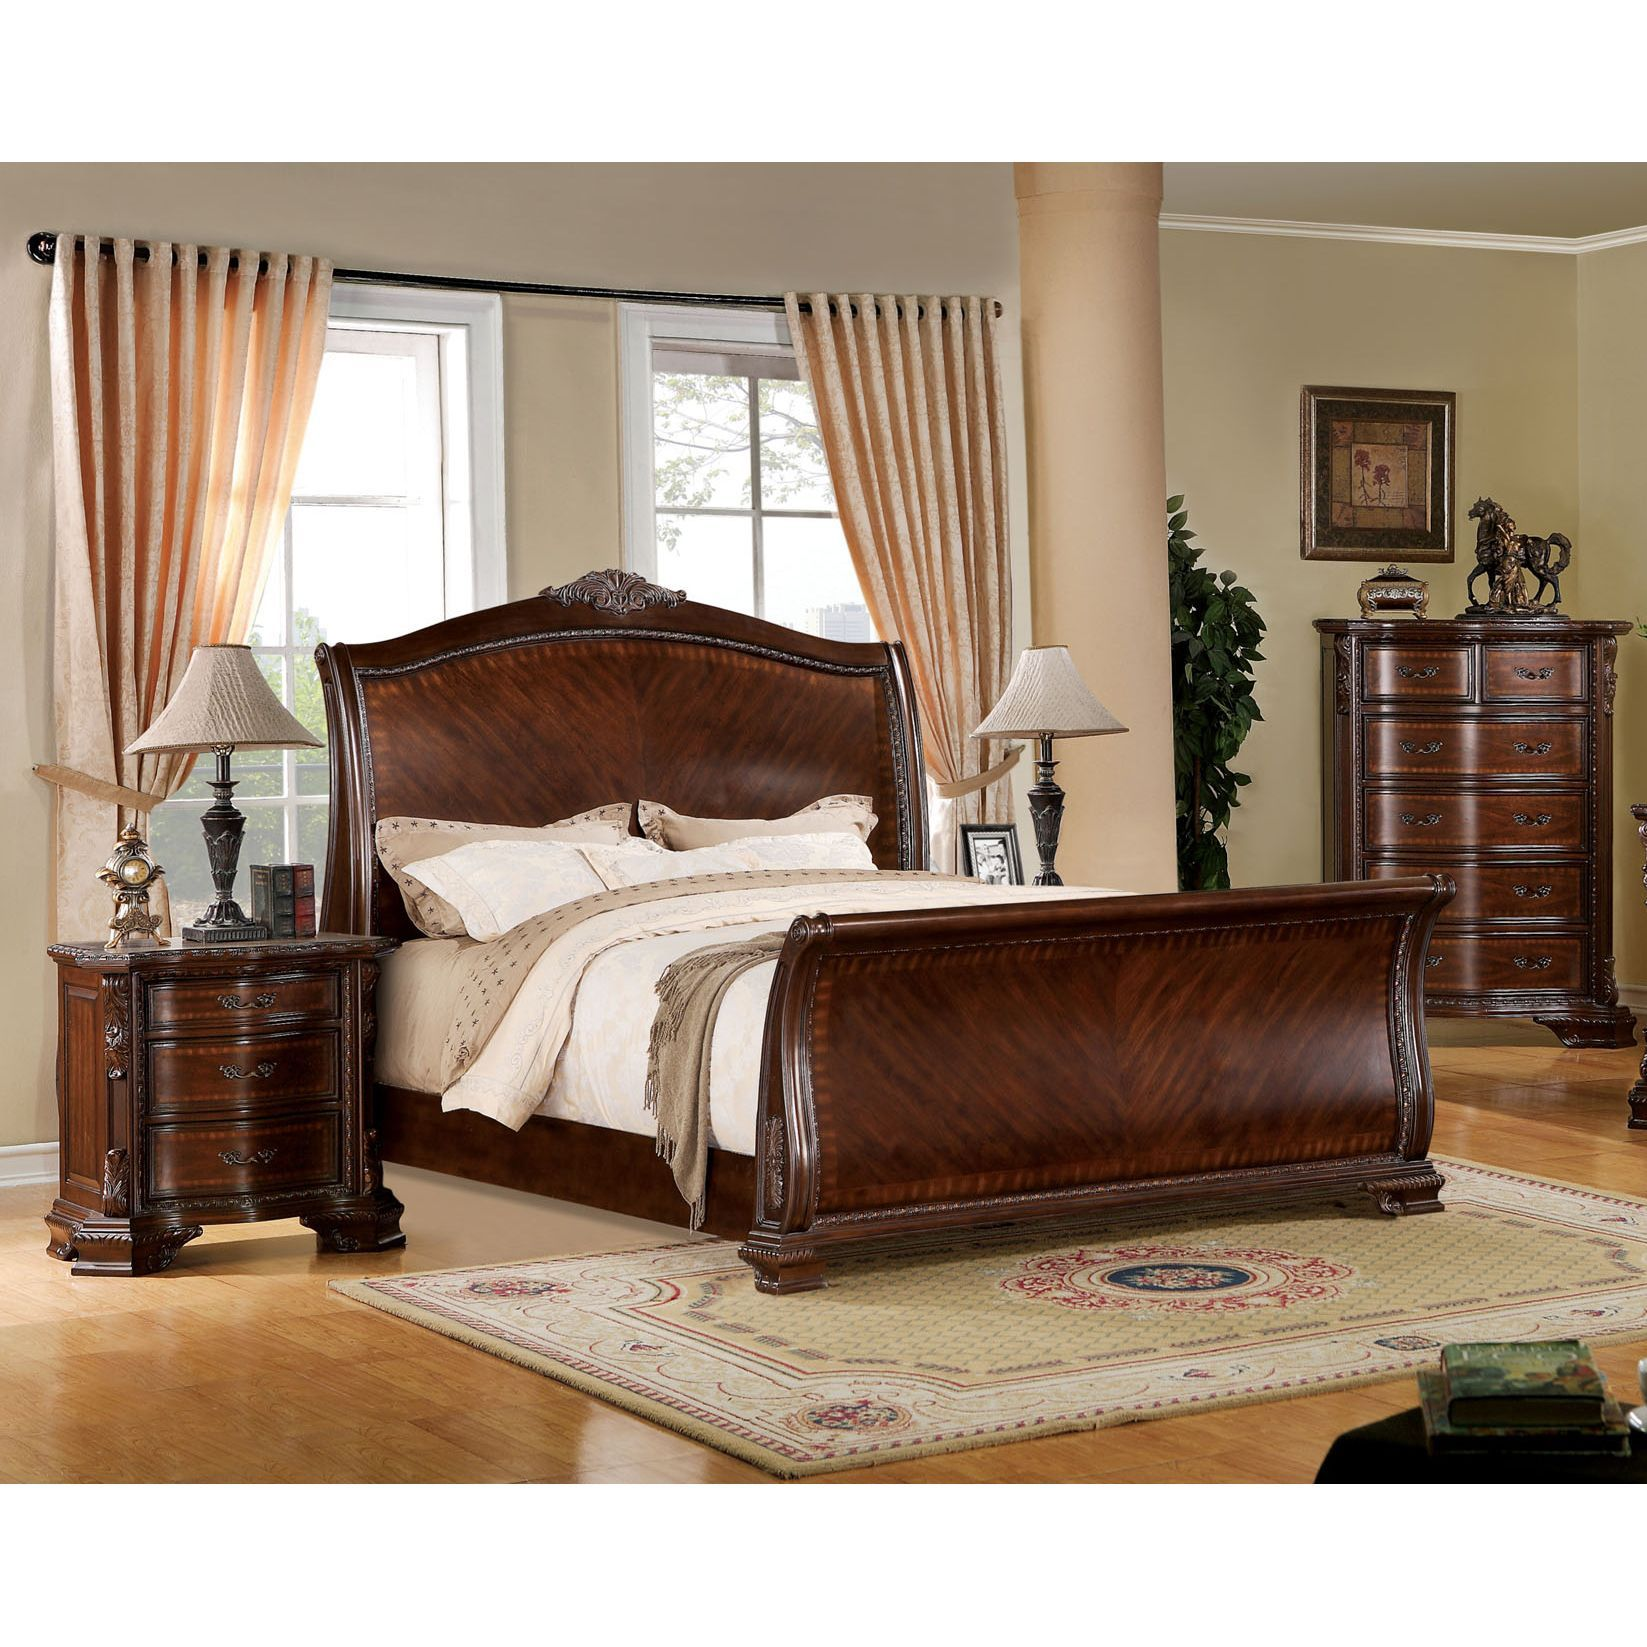 Furniture of america eliandre baroque style 3 piece sleigh - King size sleigh bed bedroom set ...